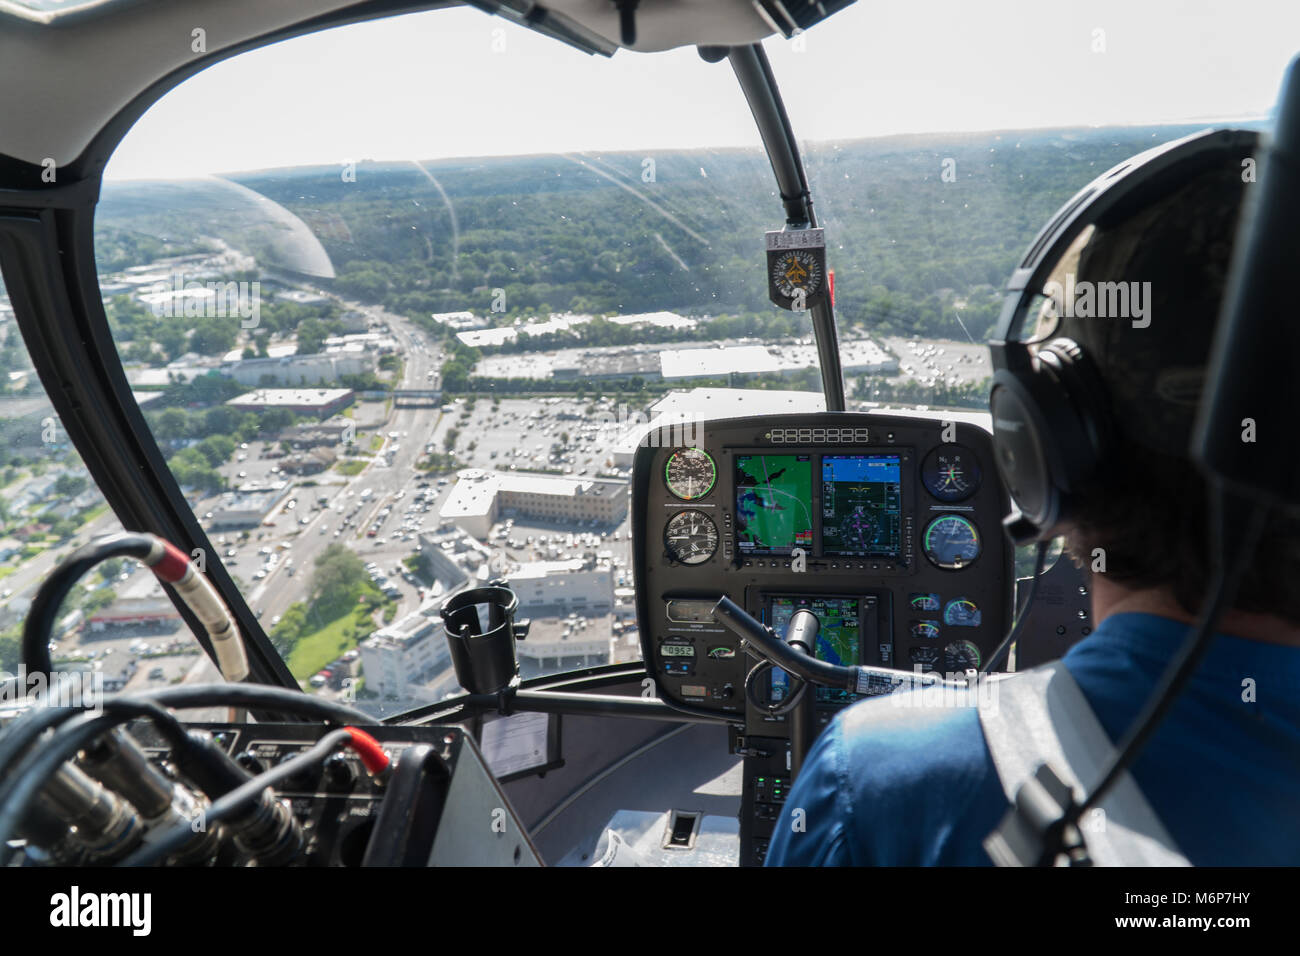 New York City, Circa 2017: Aerial view inside helicopter cockpit flying over suburban area highway traffic on a - Stock Image